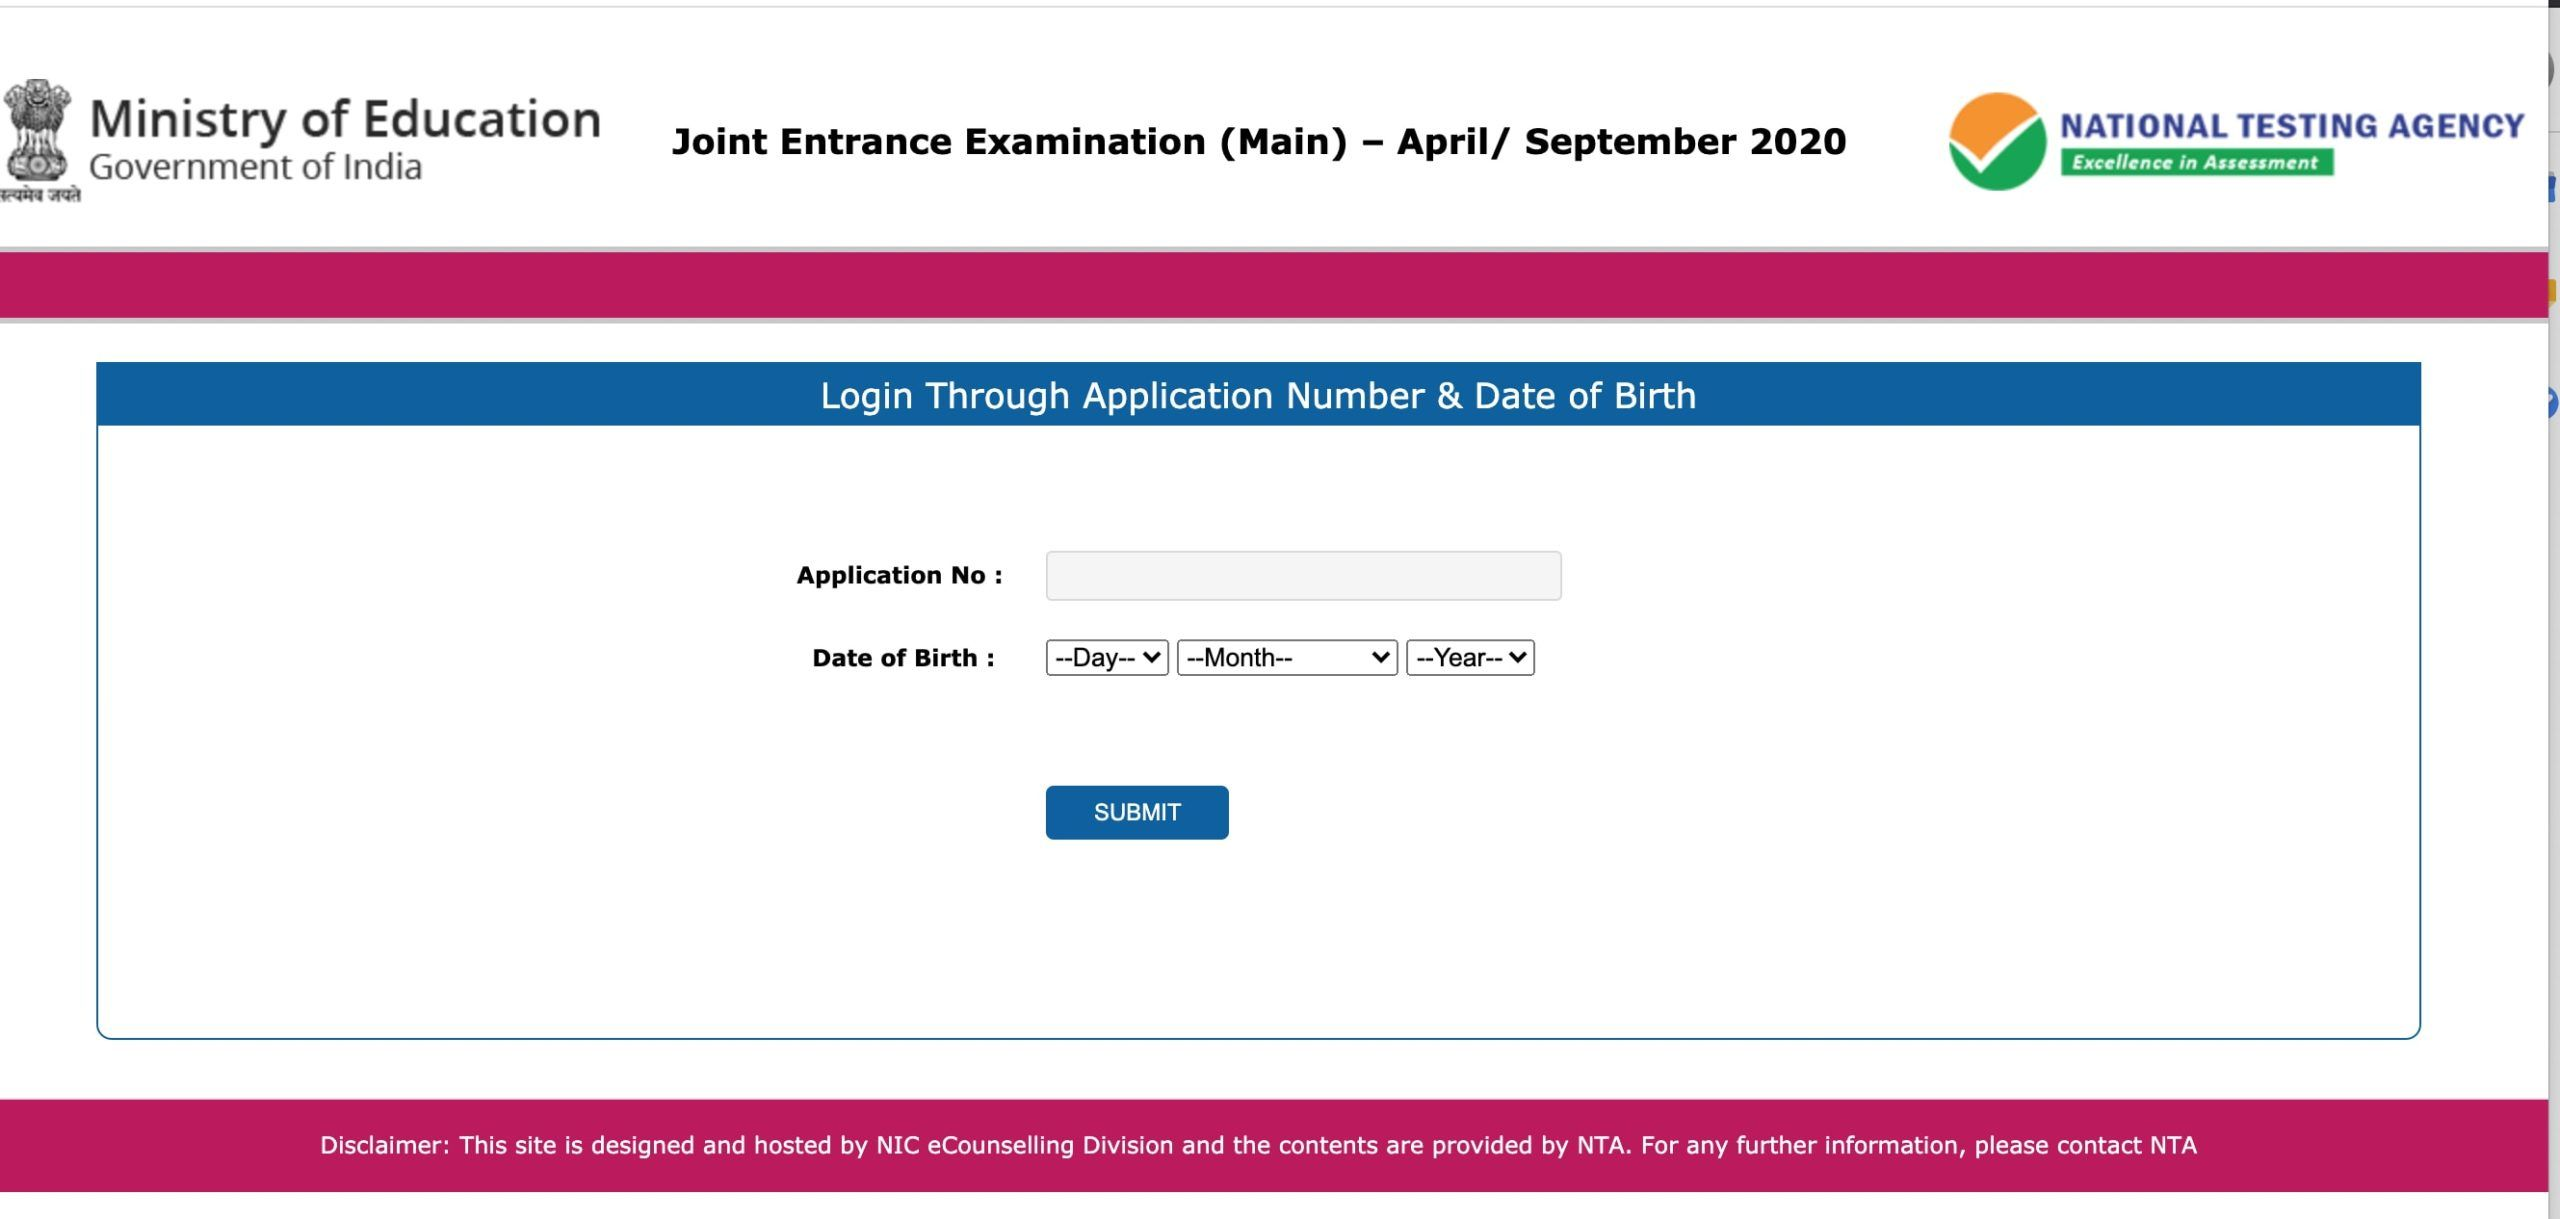 9 Top Ldc Admit Card Name Wise In 2020 Joint Entrance Examination Name Wise Previous Year Question Paper